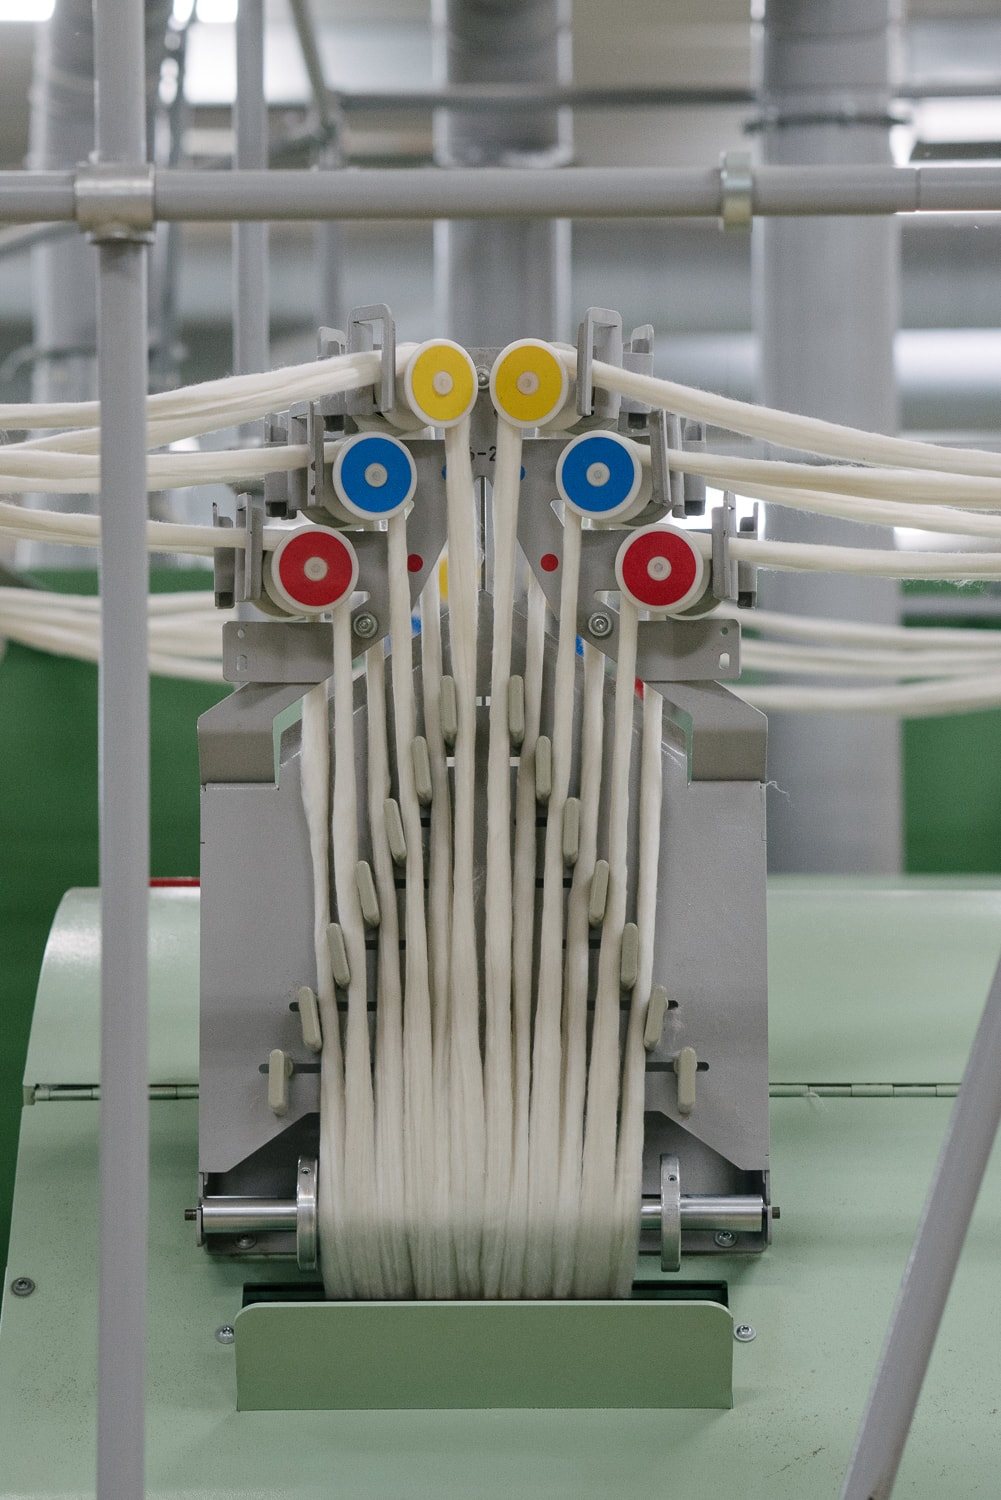 Organic cotton begins to take the form of yarn at a ginning plant in Turkey